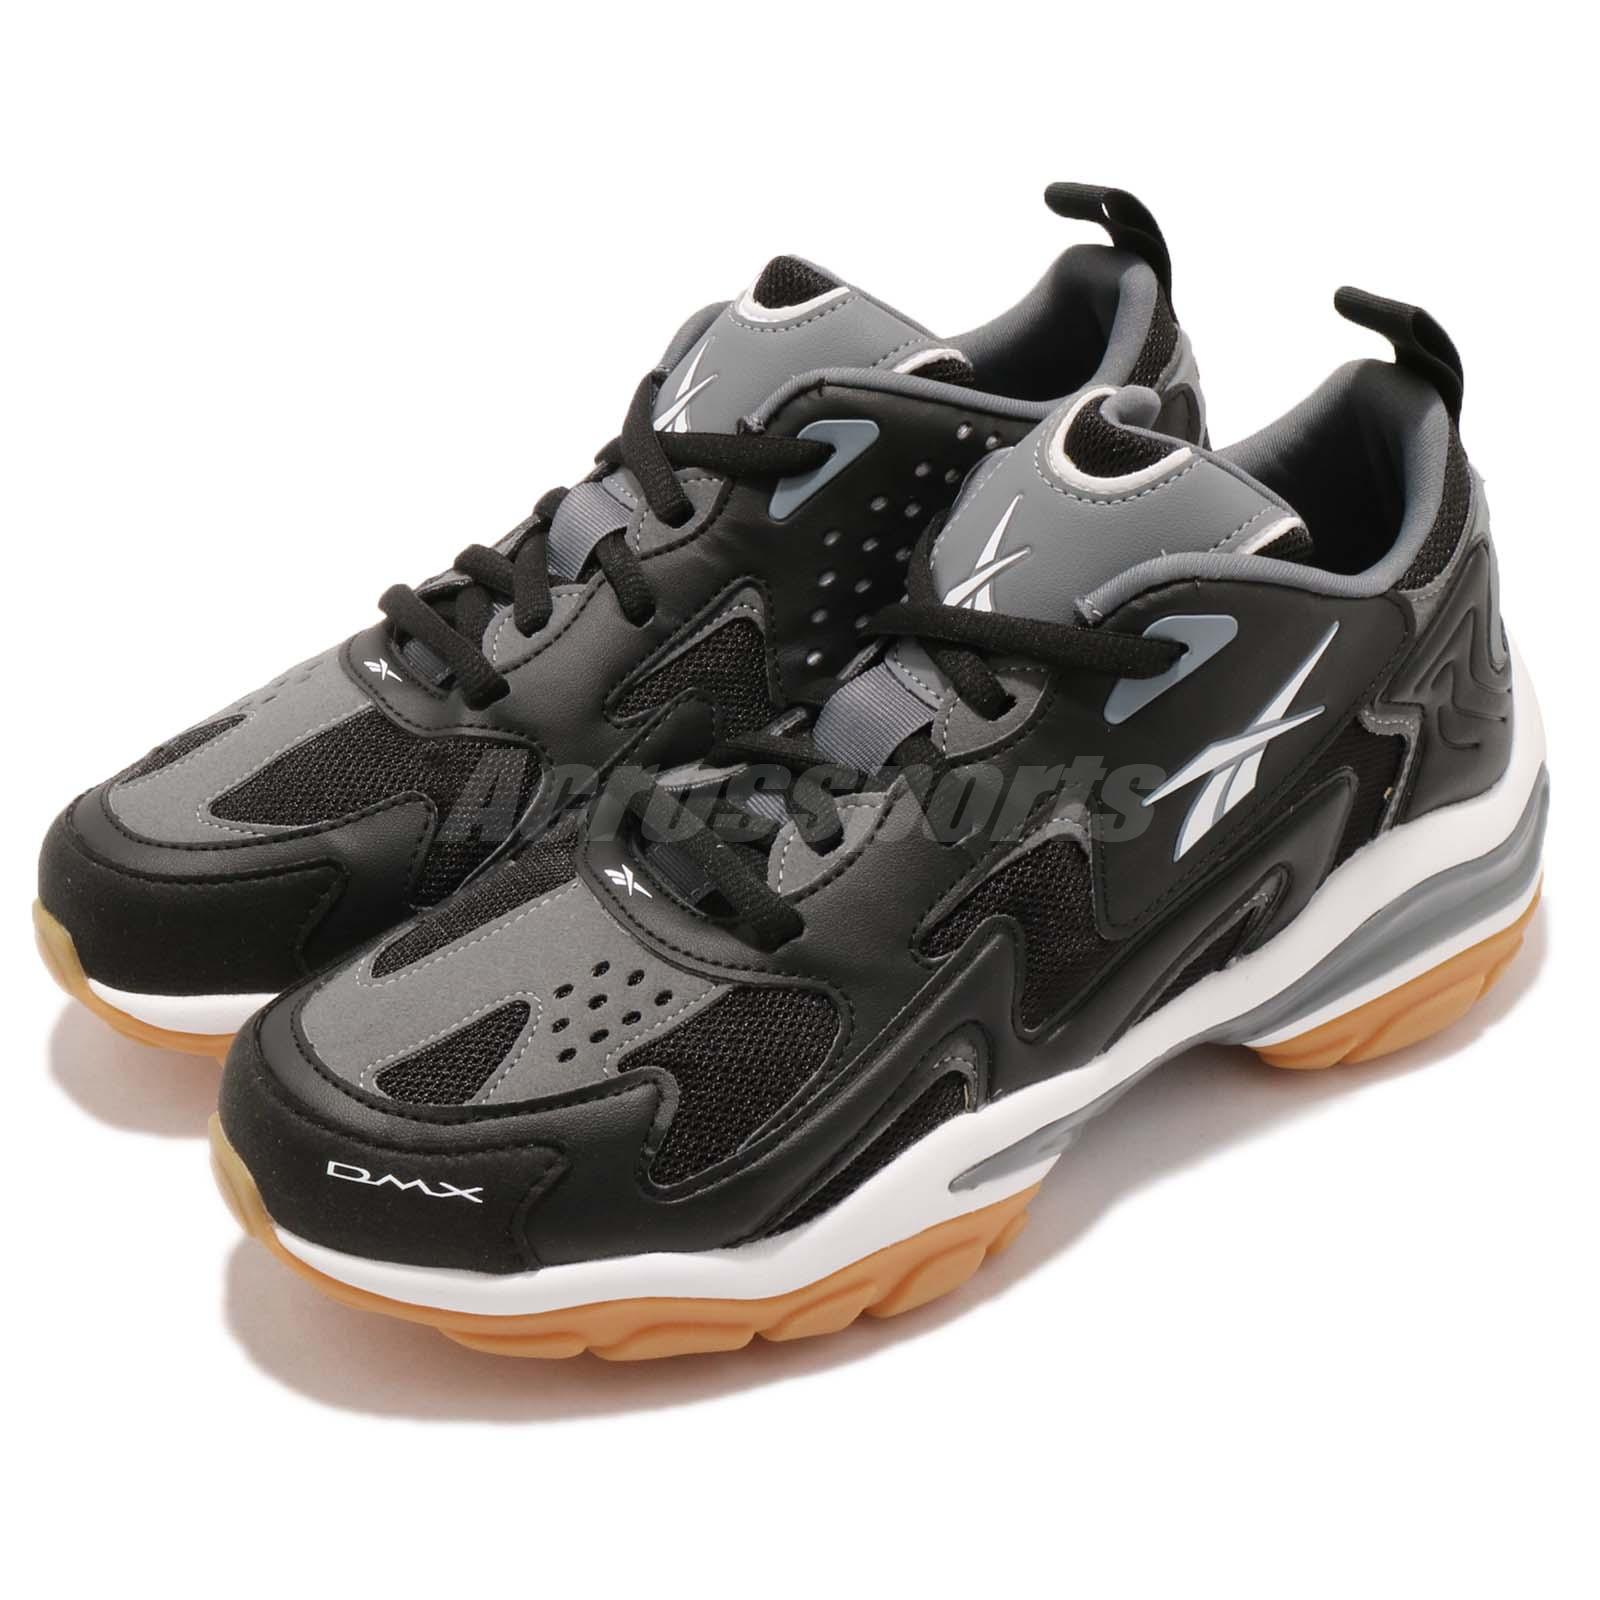 12c36718609 Details about Reebok DMX Series 1600 Black Grey White Gum Men Casual Shoes  Sneakers CN7737